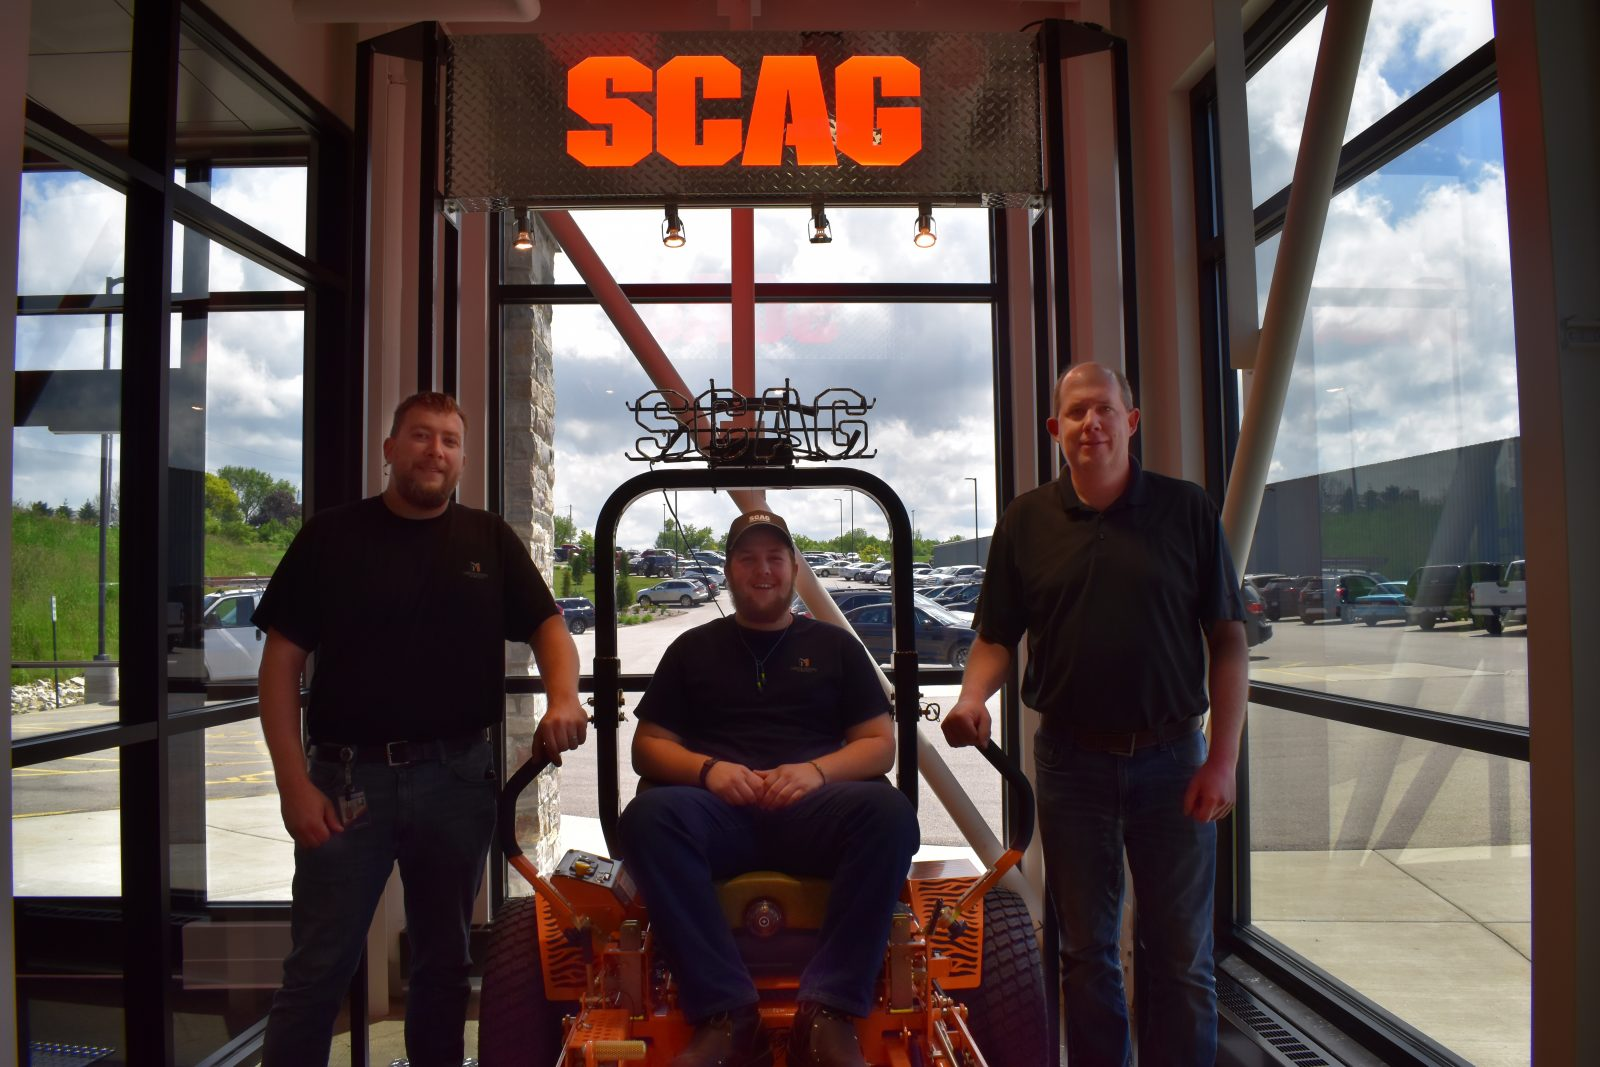 Metalcraft of Mayville employees, from left: Andy Pike, Kyle Pike, Kyle Gourlie, with the Scag mower that's painted using FANUC paint robots